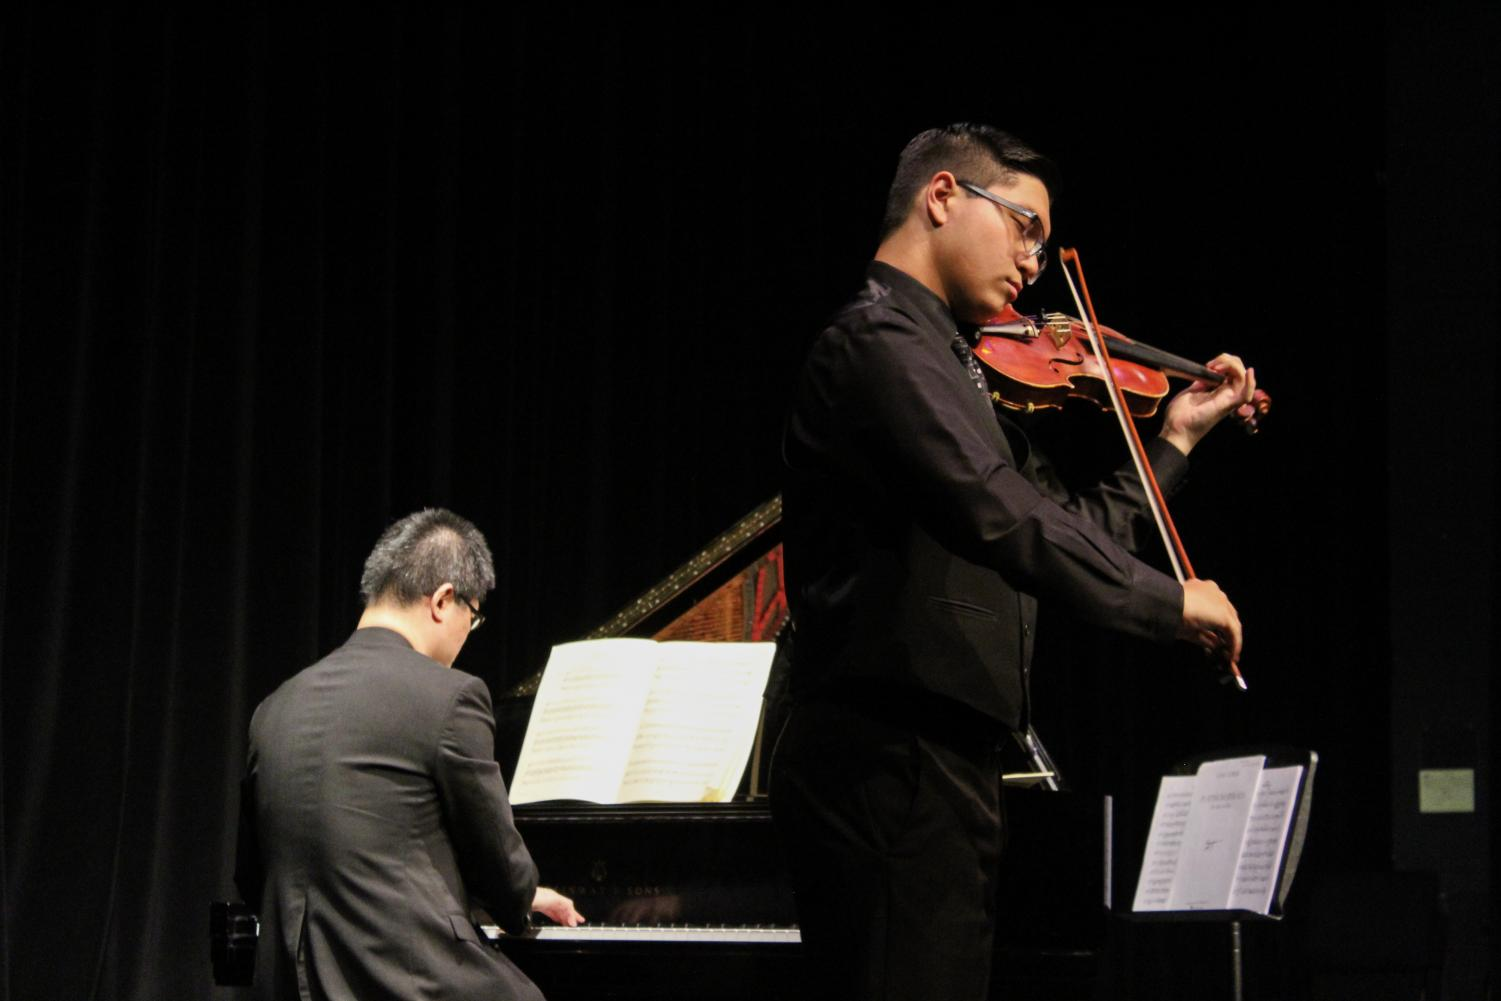 """Hakkarainen's and Mr. Lin's performance was an artistic conversation. In strings senior Elliot Weber's program notes, they write that the Mozart Sonata K 526 """"diverges from the traditional sonata by opening with a duet between the violin and piano,"""" indicating that the two instruments have """"equal importance."""""""